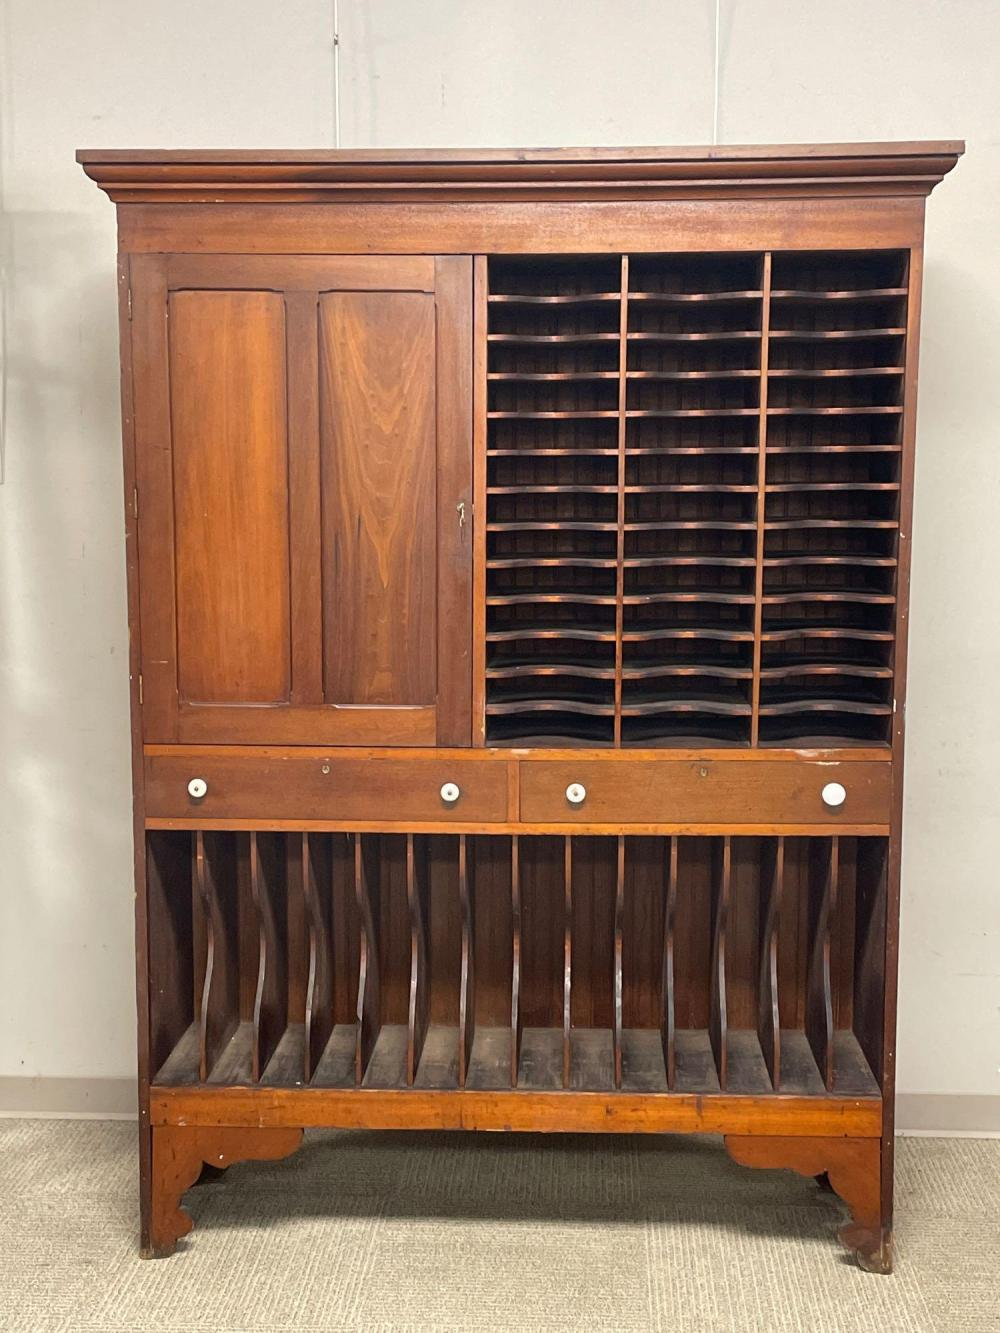 19th C. Hotel Postal and Registry Slotted Cabinet